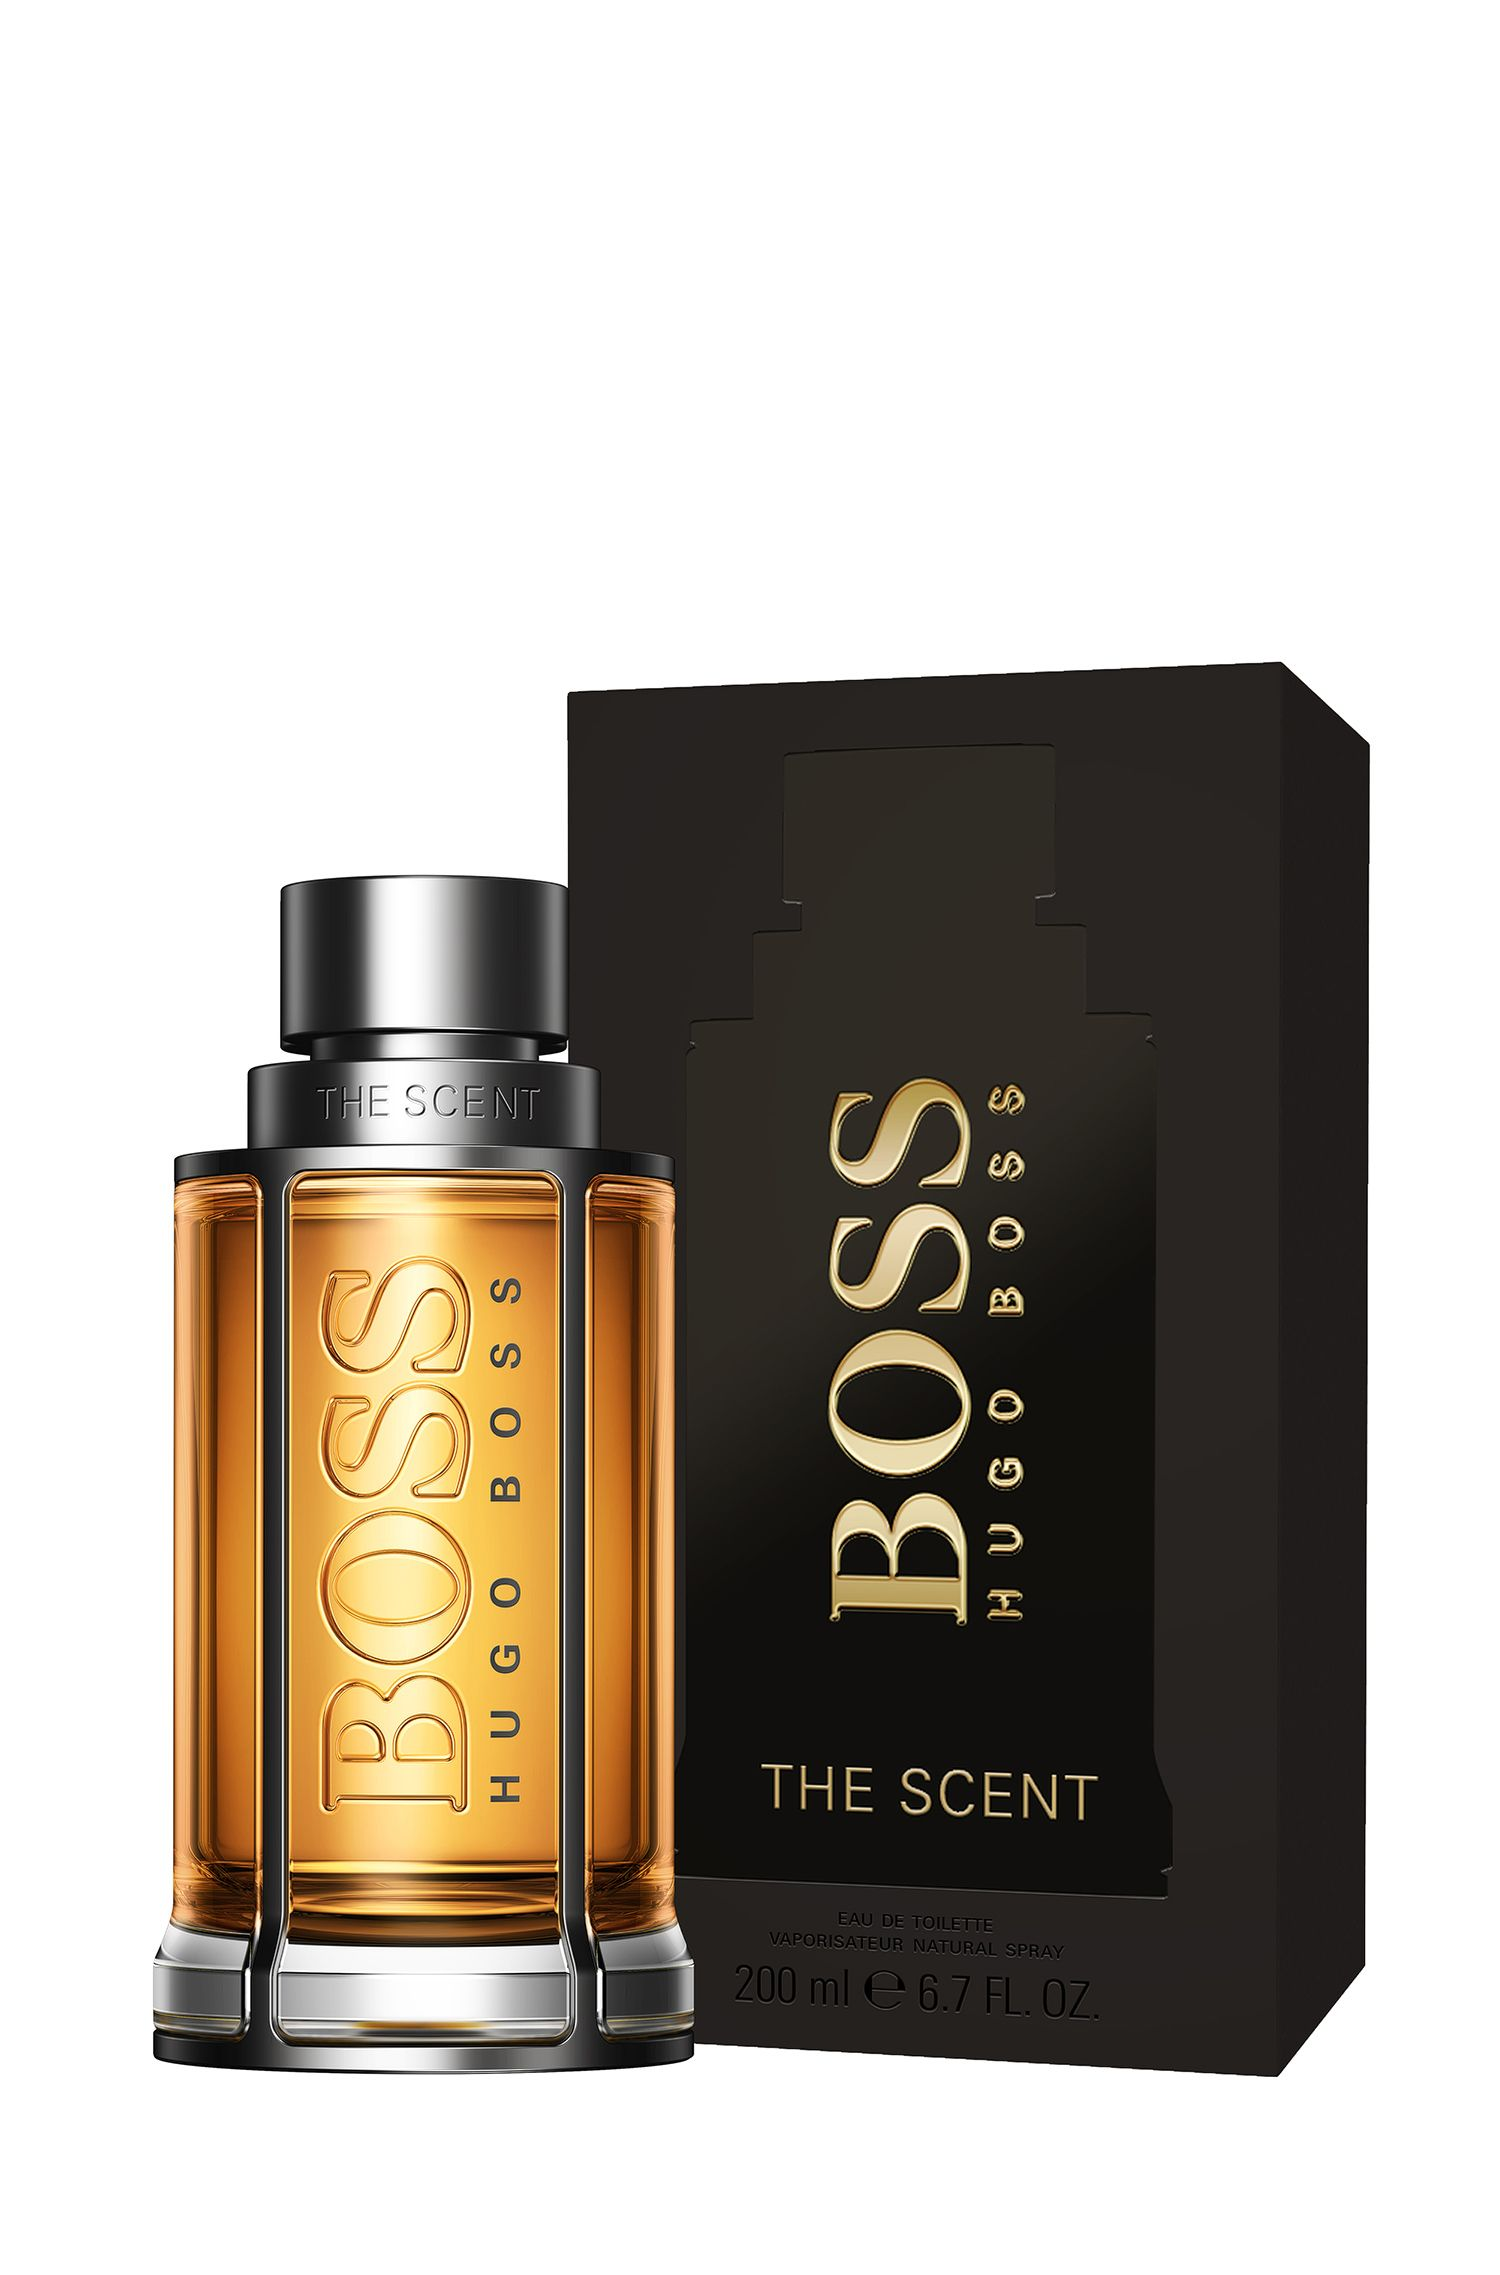 Eau de toilette BOSS The Scent da 200 ml